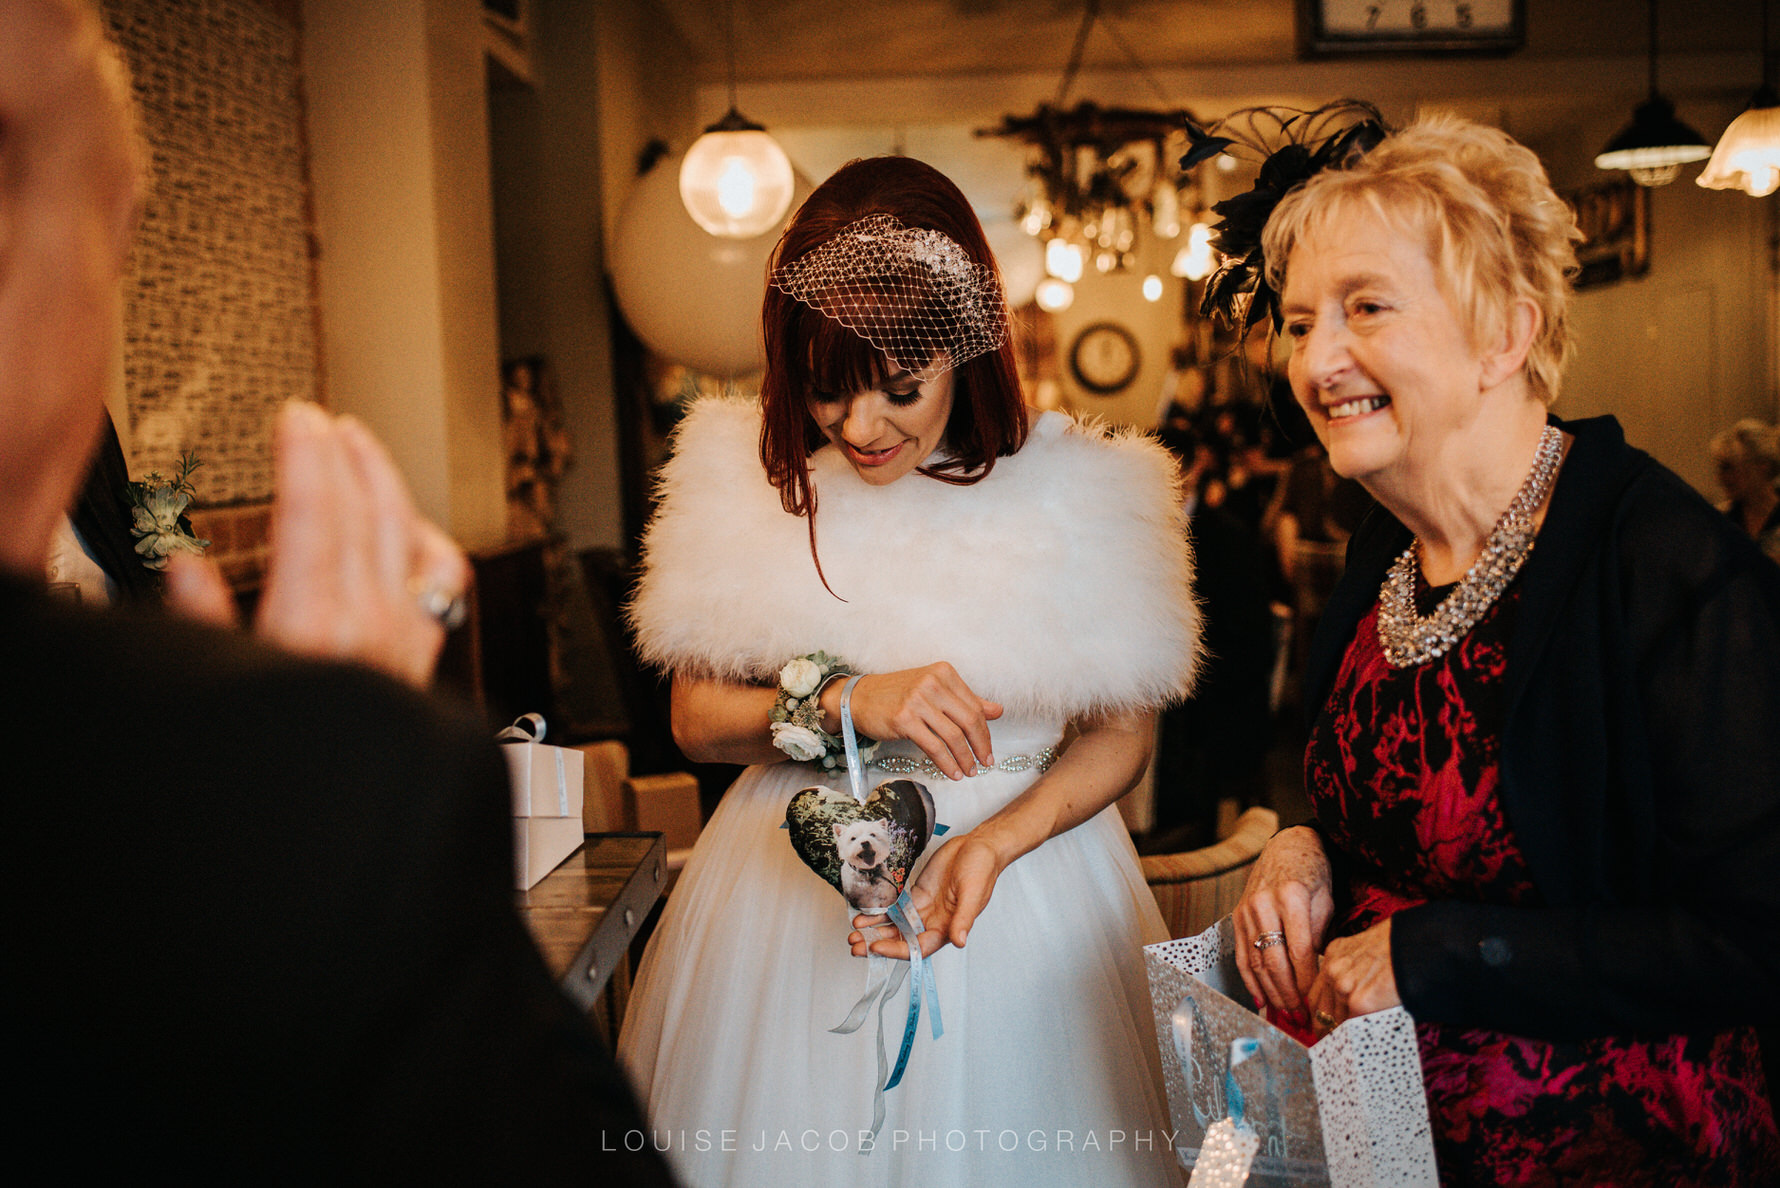 Unposed documentary wedding photography in Chester